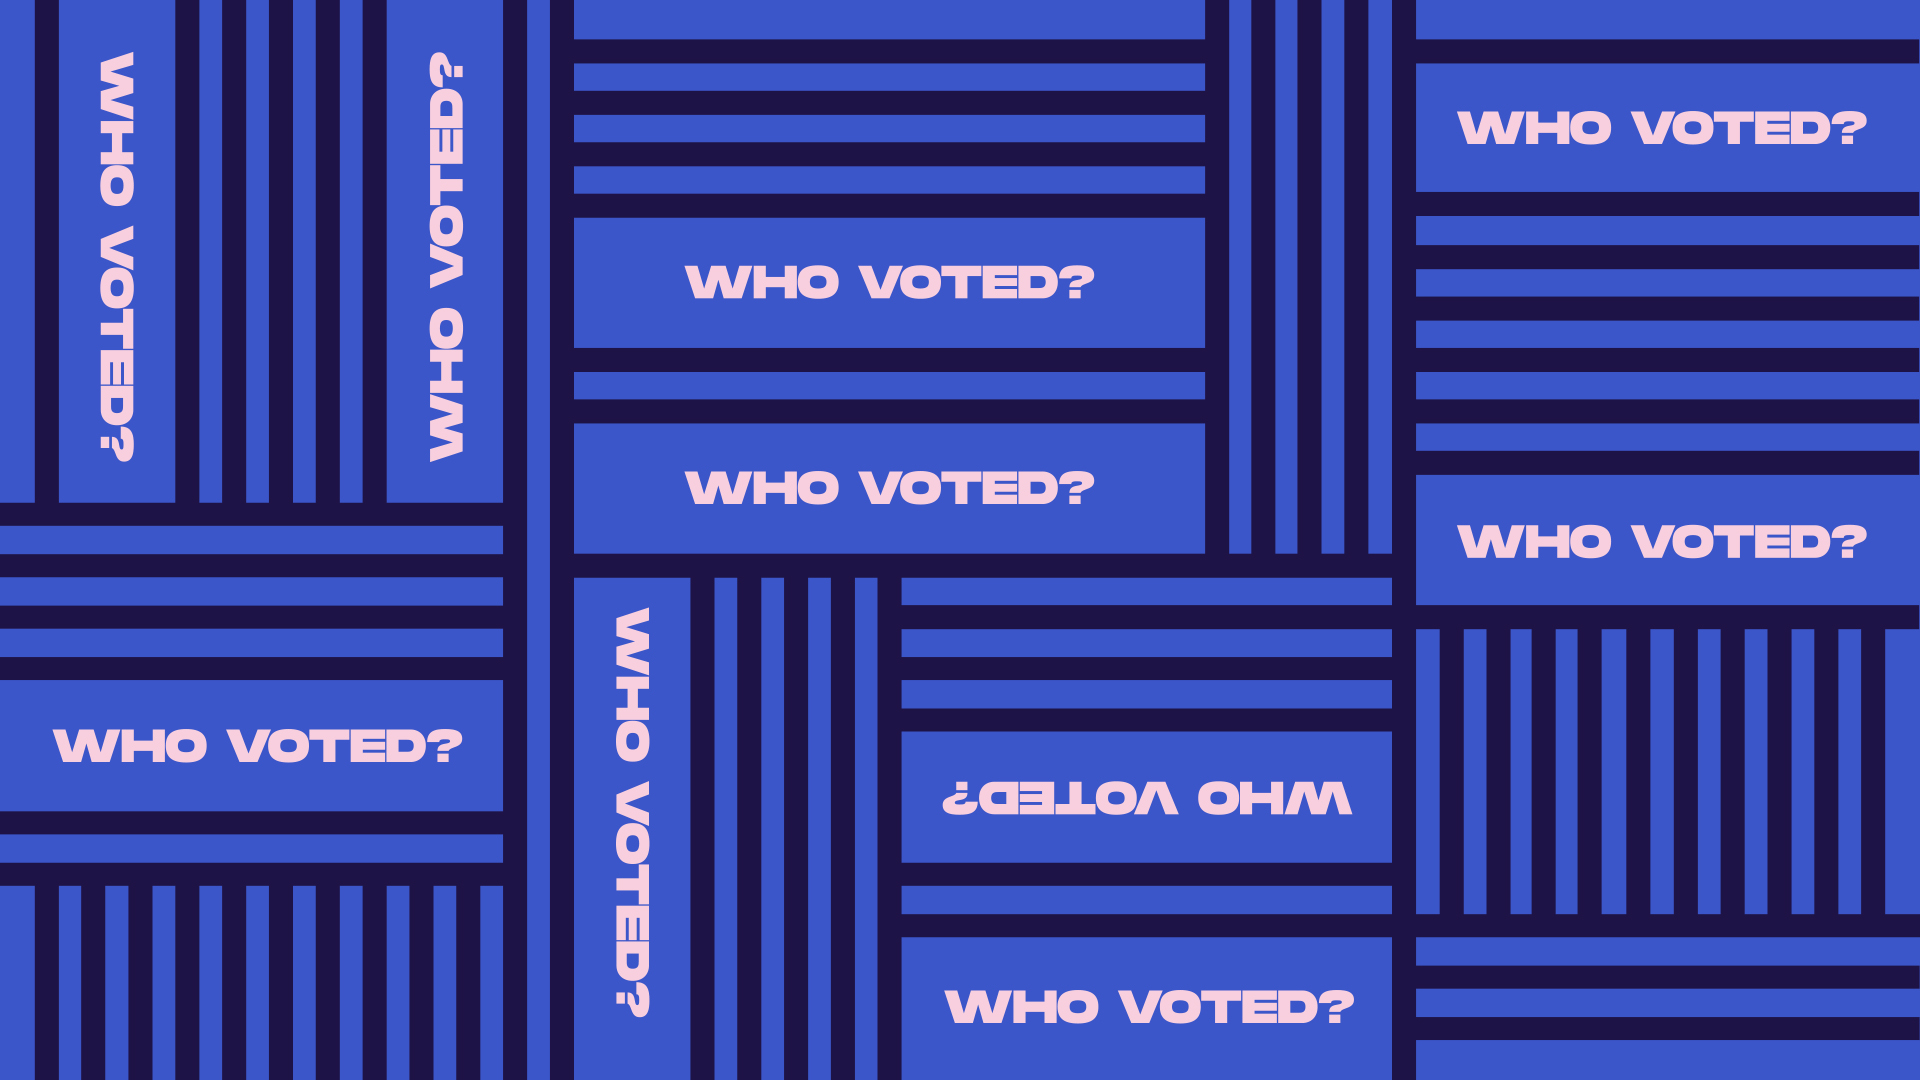 whovoted